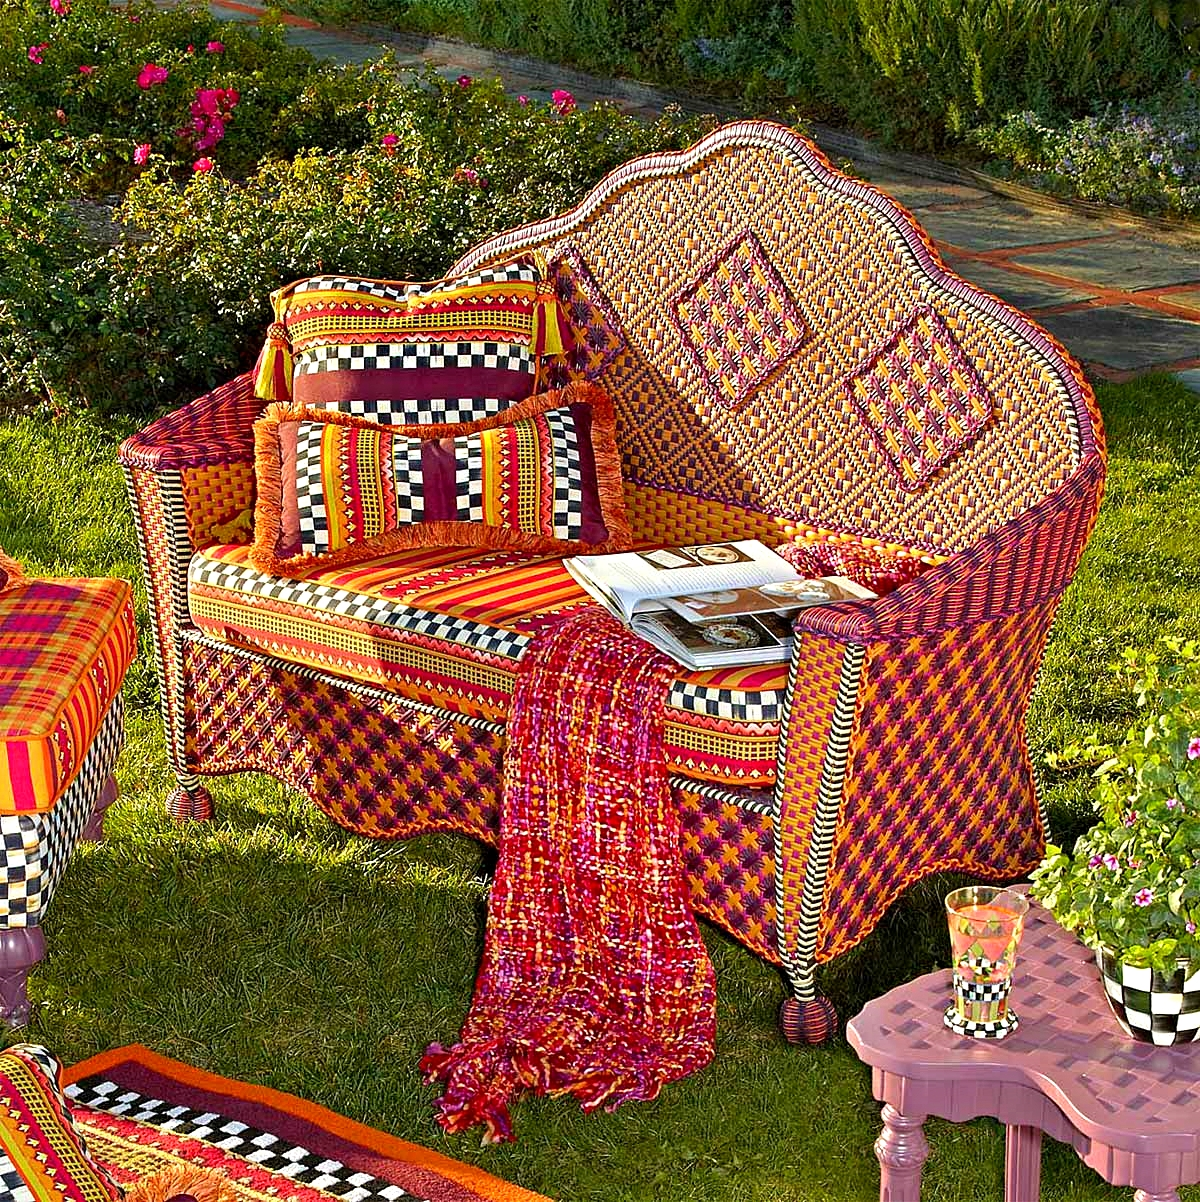 Sunset Outdoor Love seat